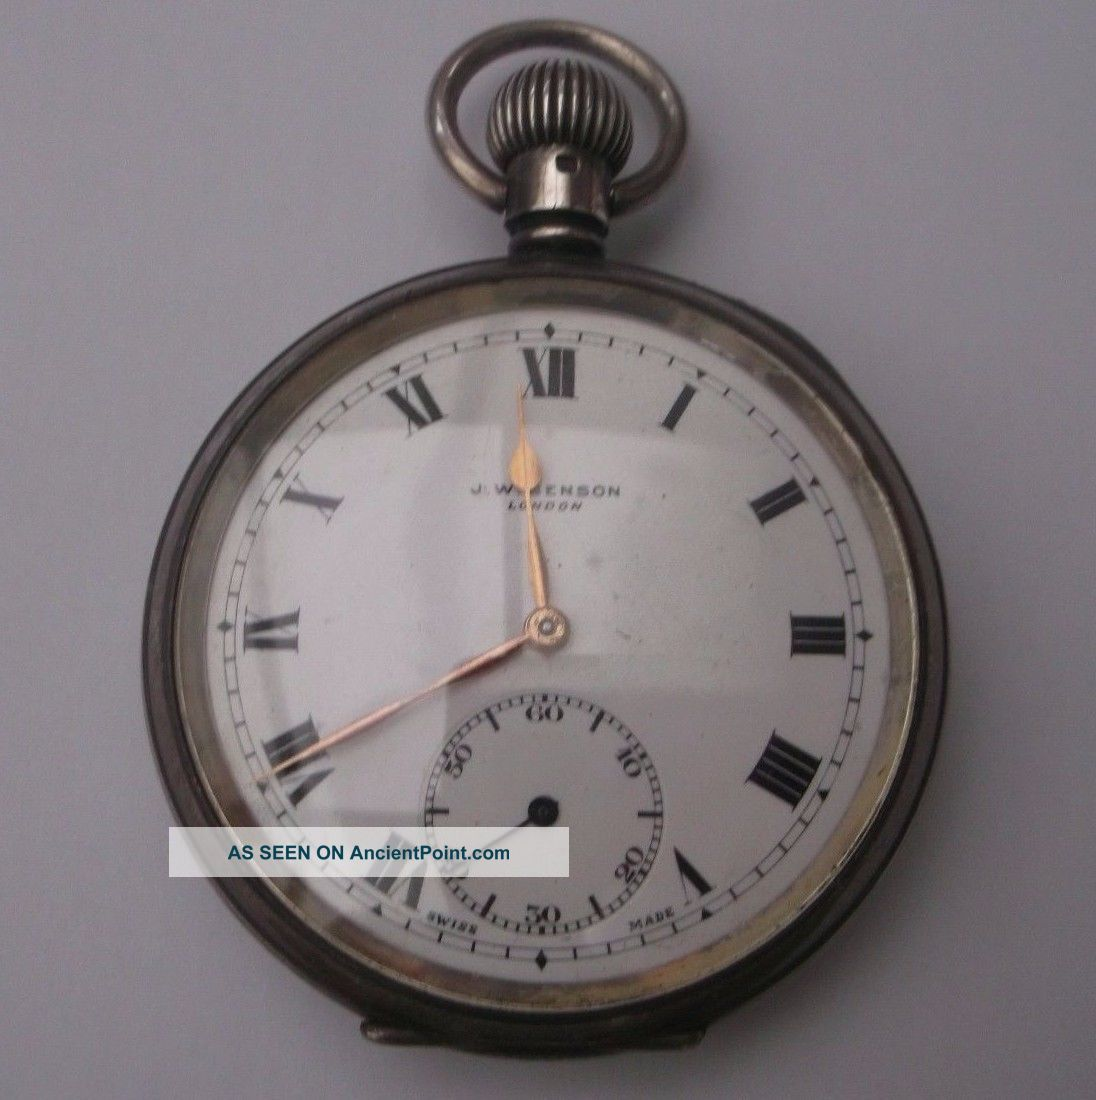 Antique Silver Pocket Watch J.  W.  Benson Stamped Weight 104.  3g Sub Dial Pocket Watches/Chains/Fobs photo